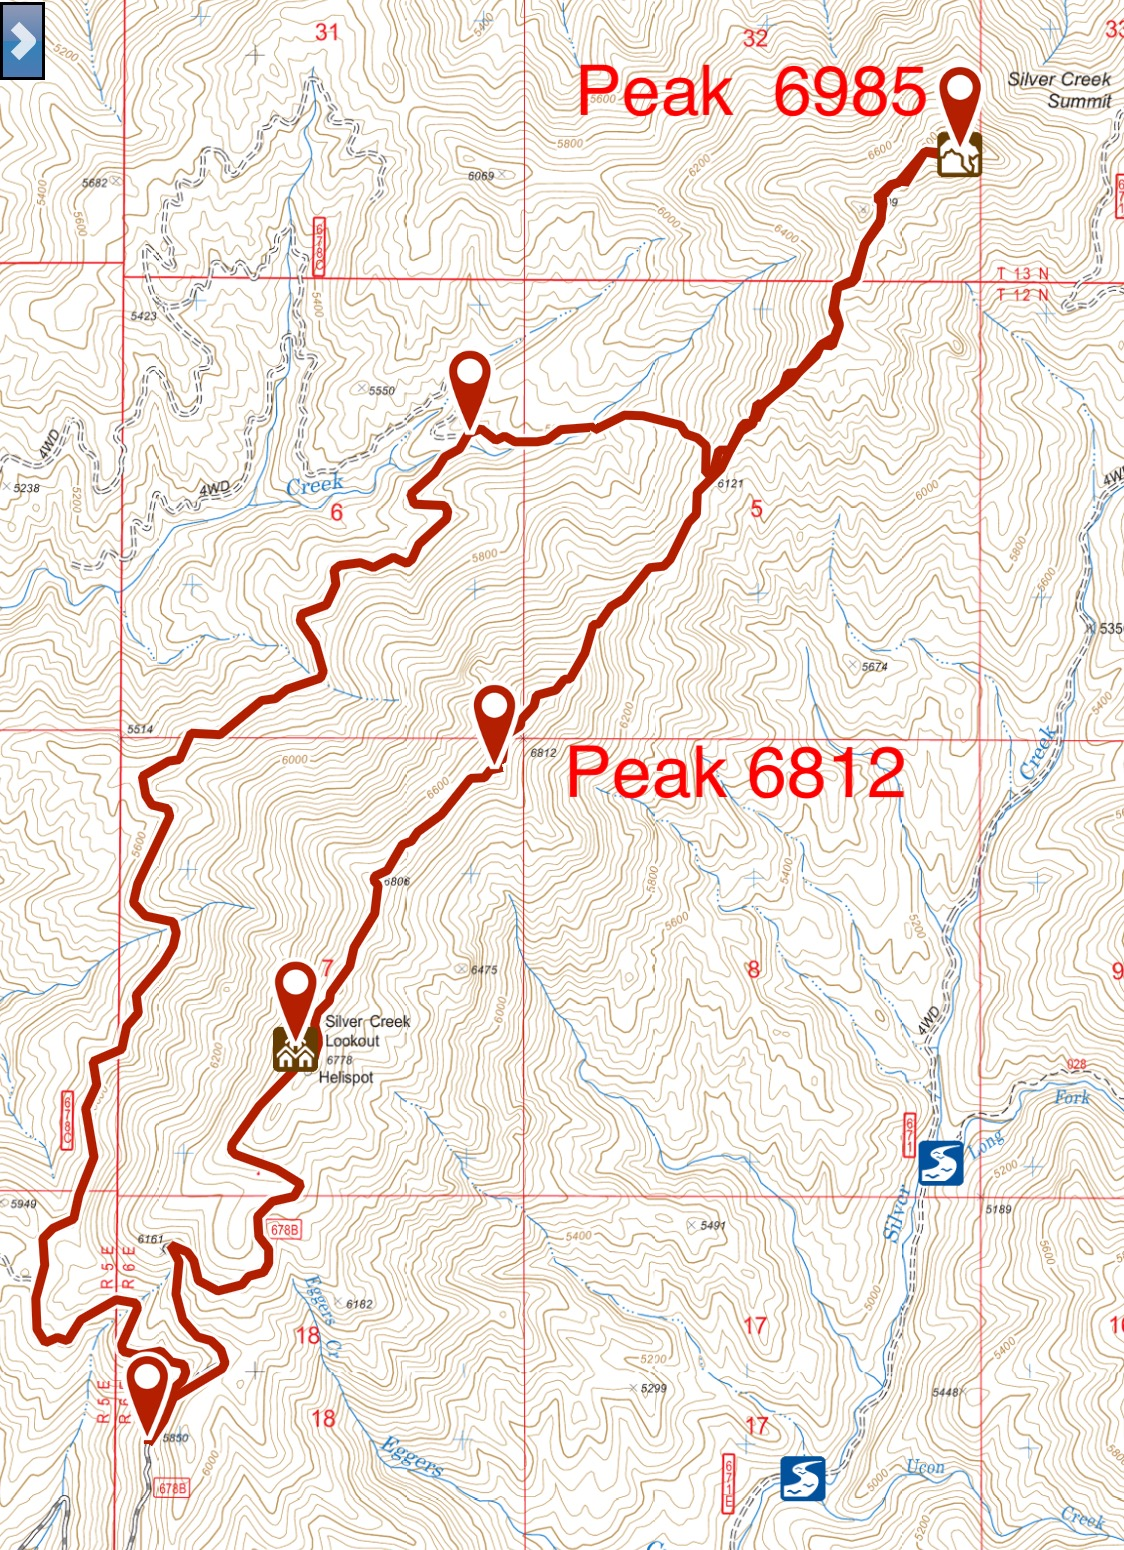 My GPS Track for Peaks 6812 and 6875.